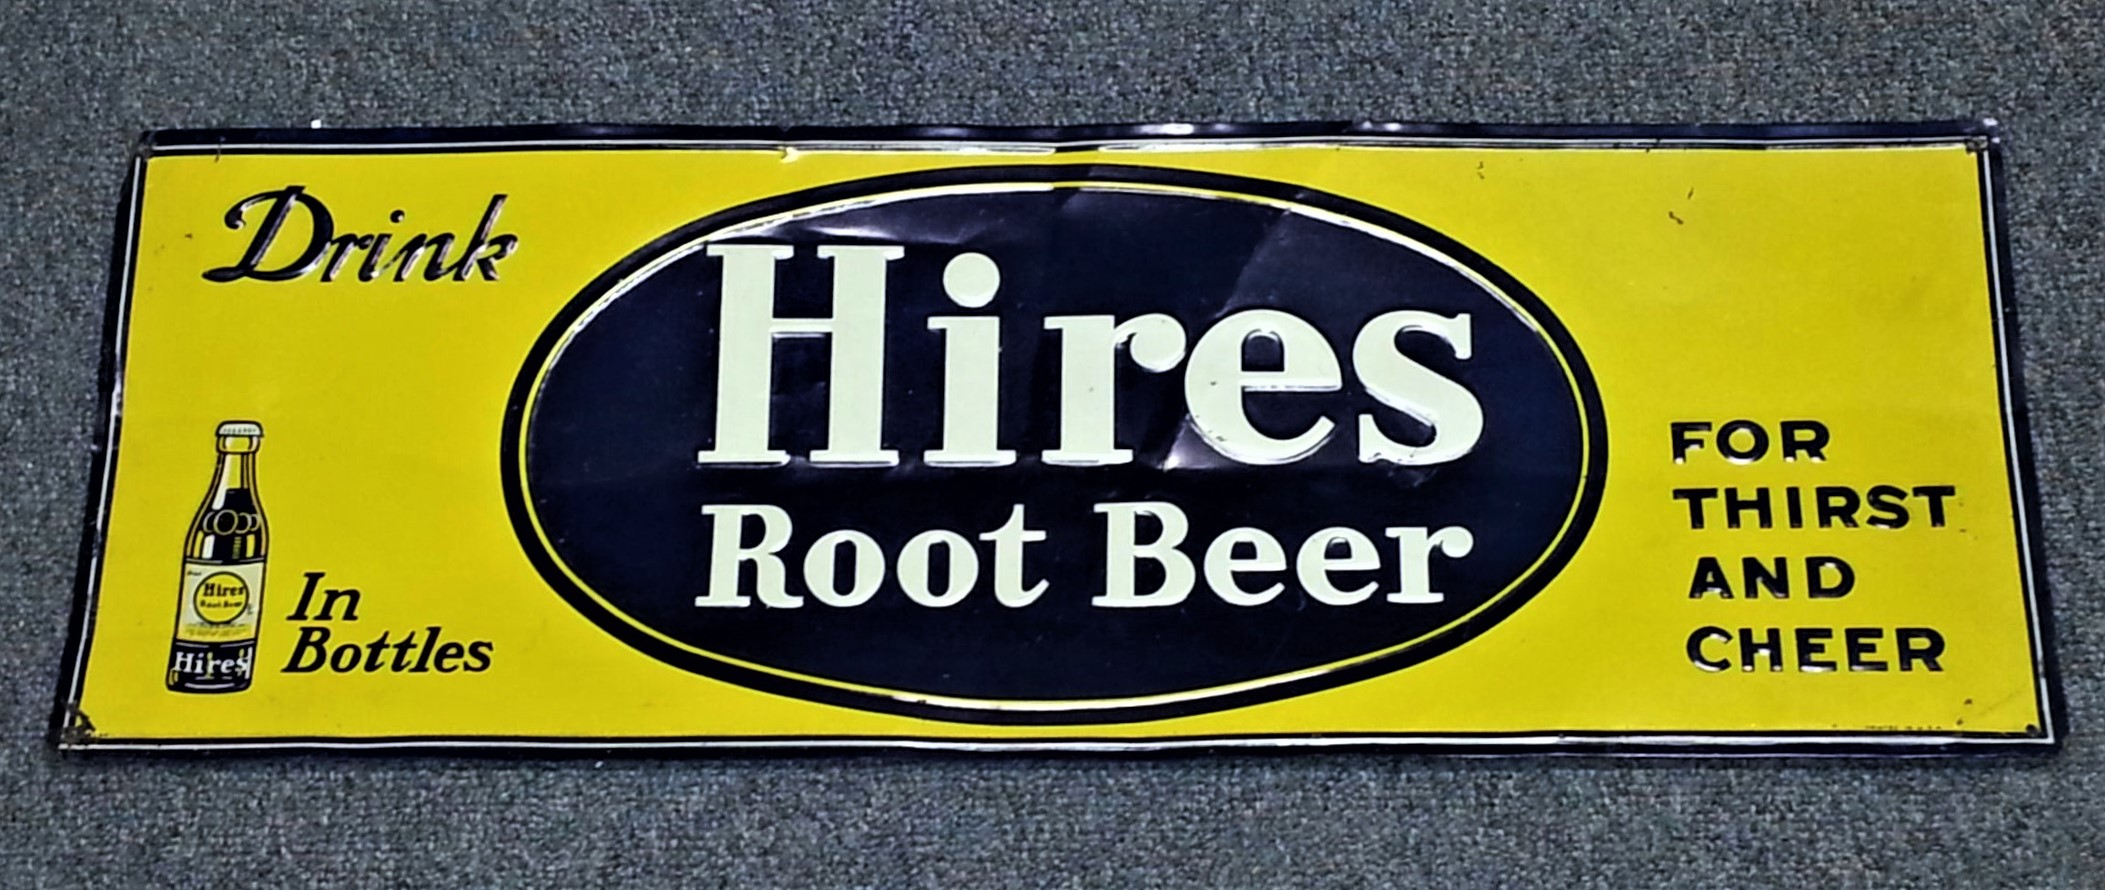 Hires Root Beer Sign.jpg